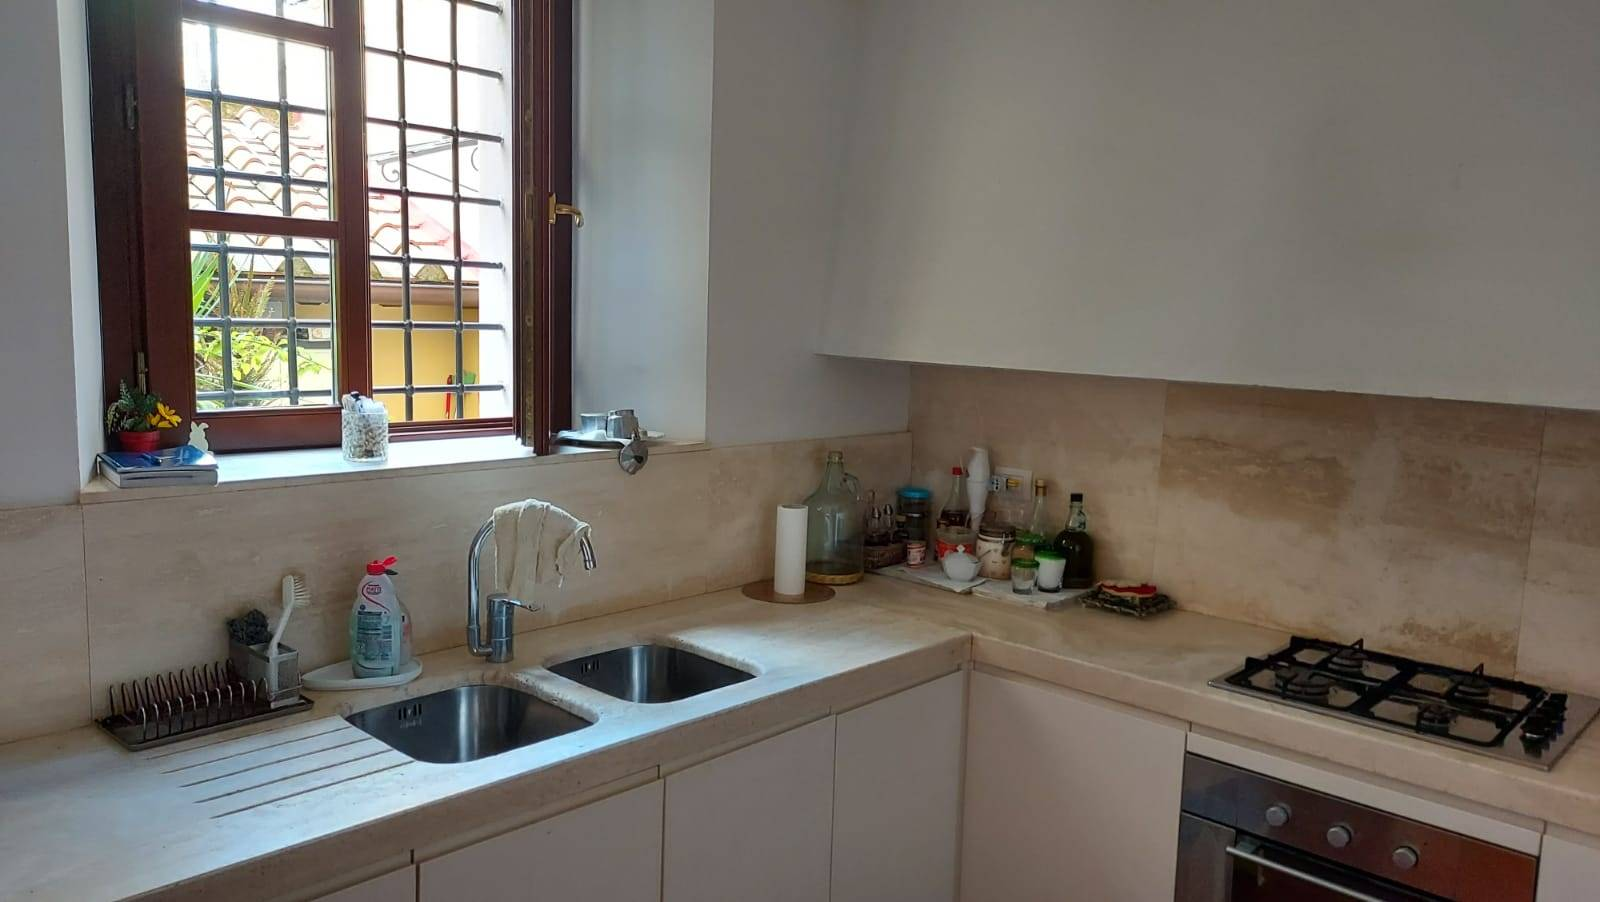 MARIGNOLLE, FIRENZE, Apartment for rent of 160 Sq. mt., Restored, Heating Individual heating system, Energetic class: G, Epi: 230 kwh/m2 year, placed